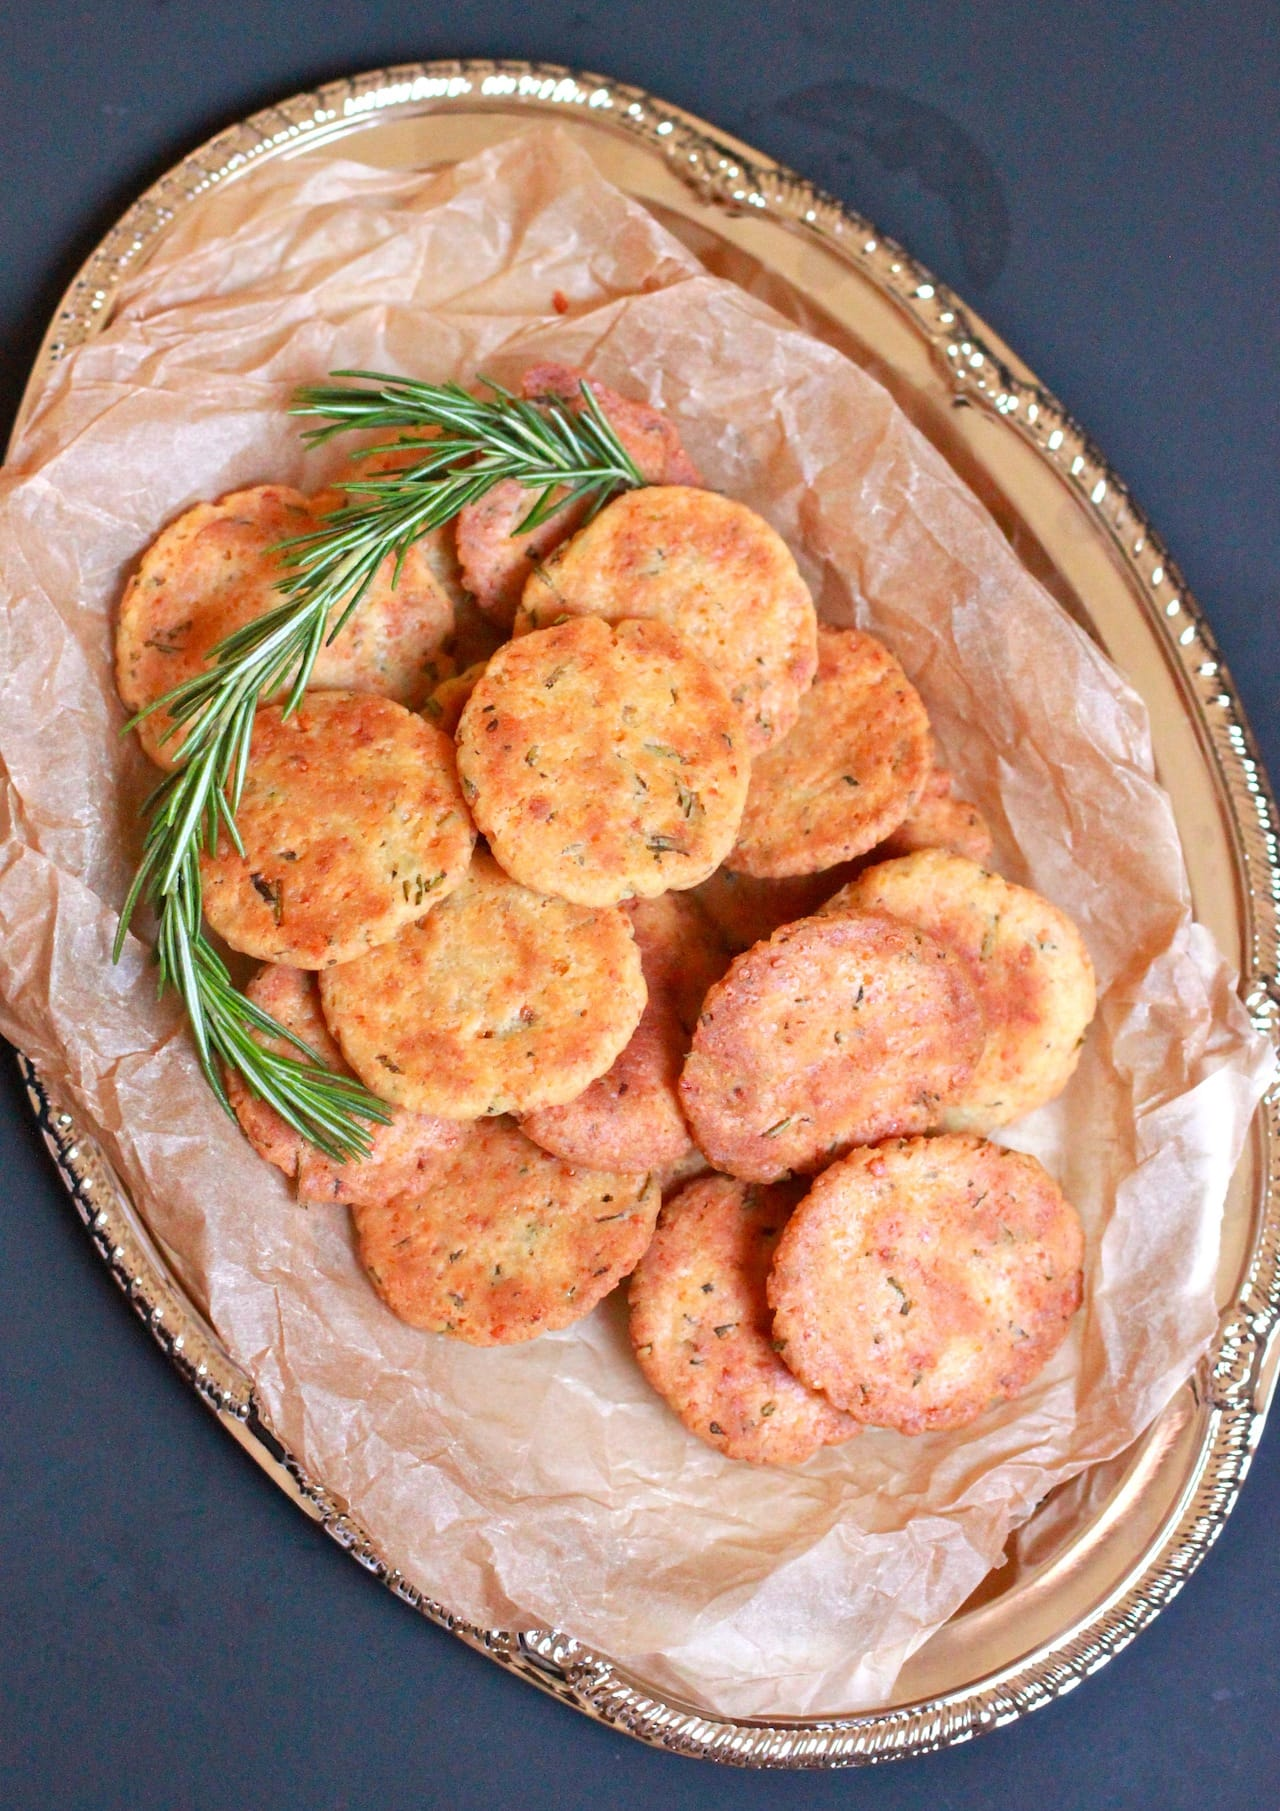 Rosemary and Parmesan Savory Cookies | Playful Cooking